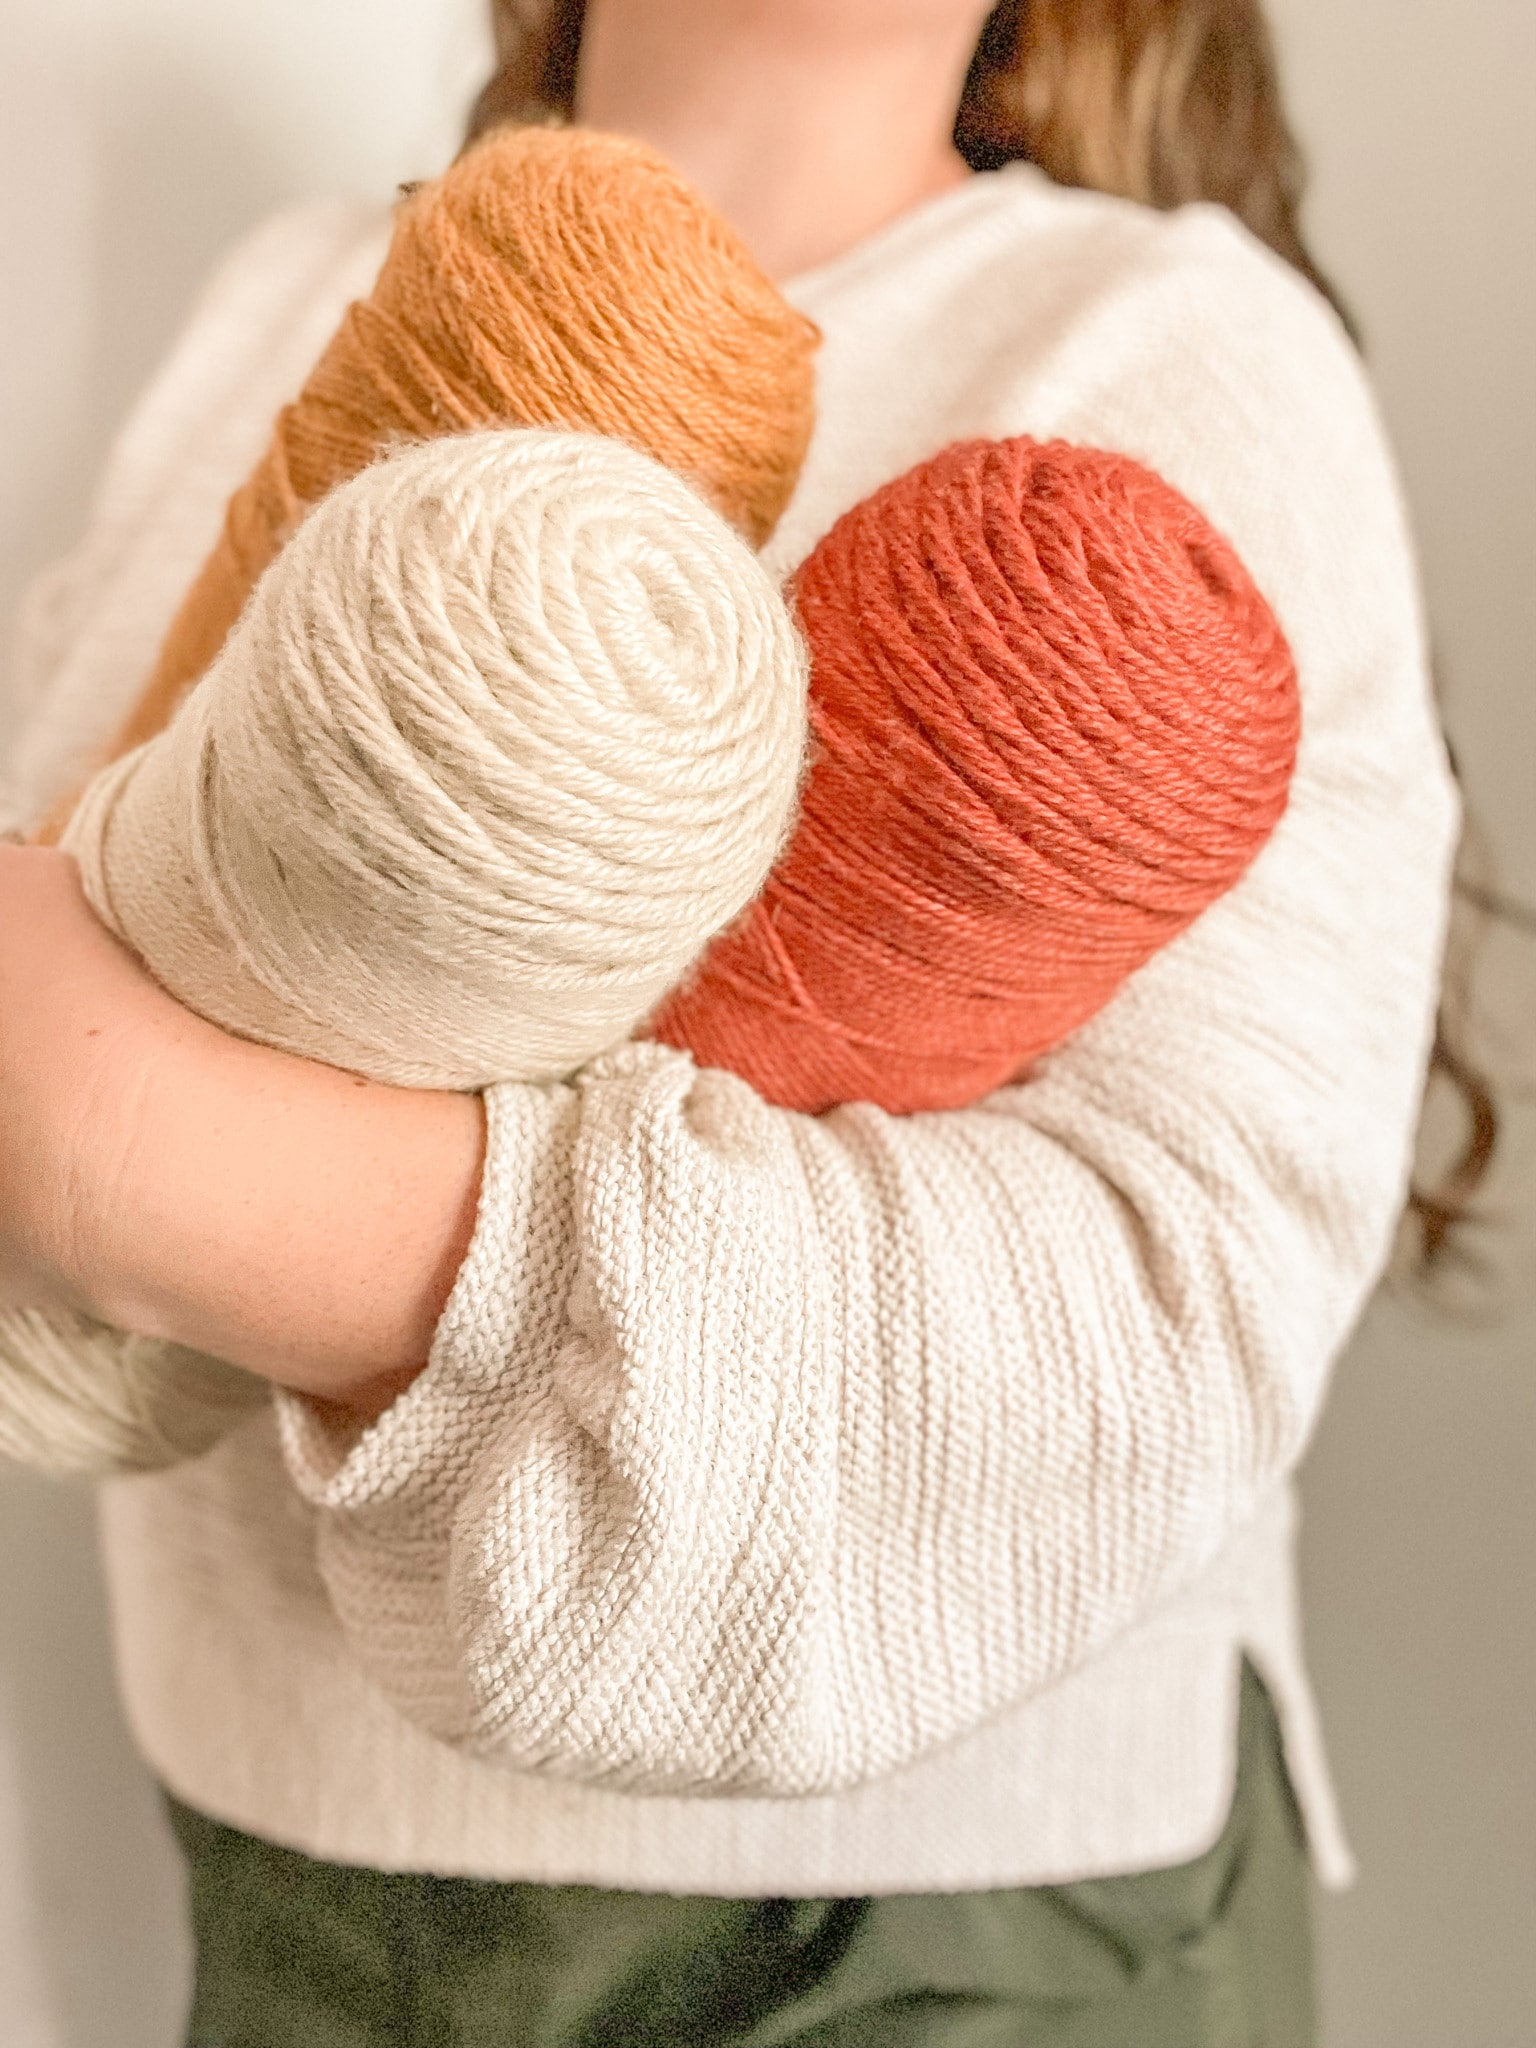 Woman holding three skeins of yarn in Fall colors